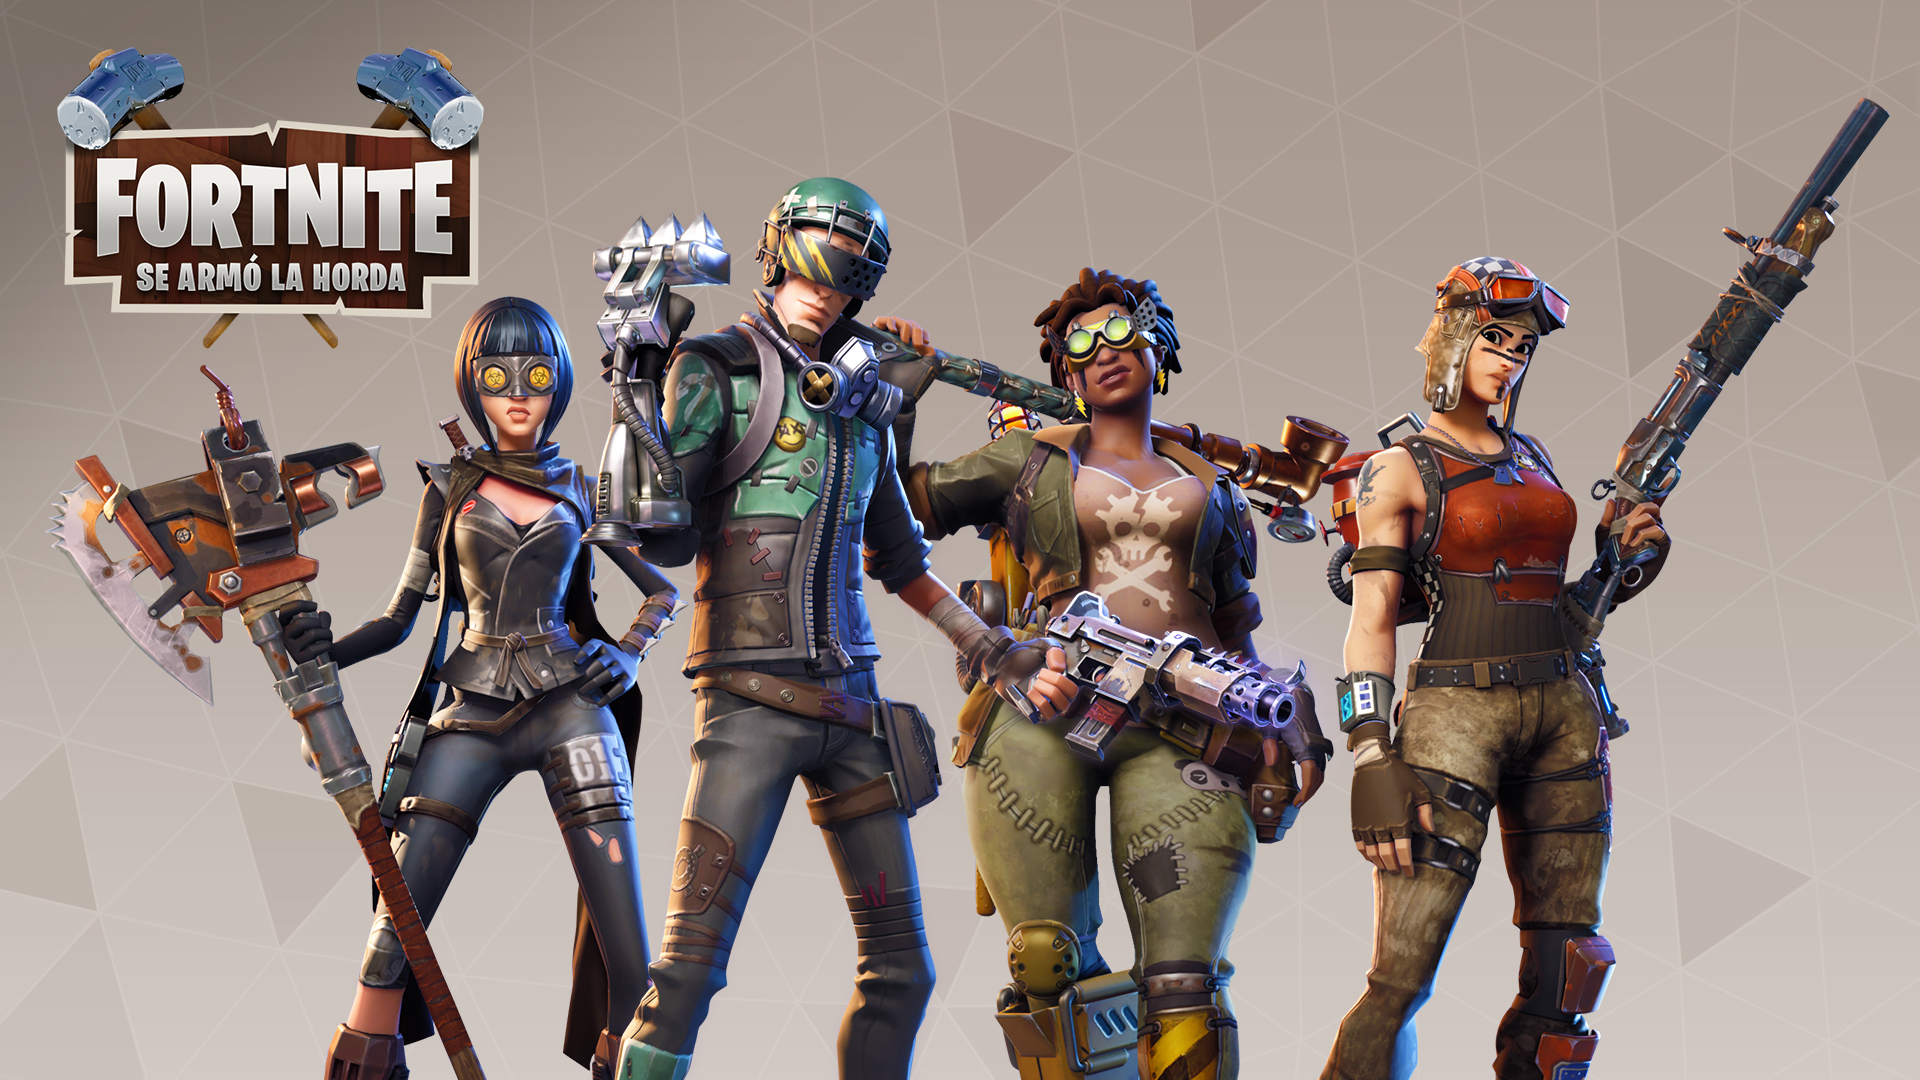 Fortnite%2Fblog%2Fea-1-7-patch-notes%2FES-ES-HB-Heroes-1920x1080-d41c7d7d5d9d09660af99b52415f6851fecb2de1